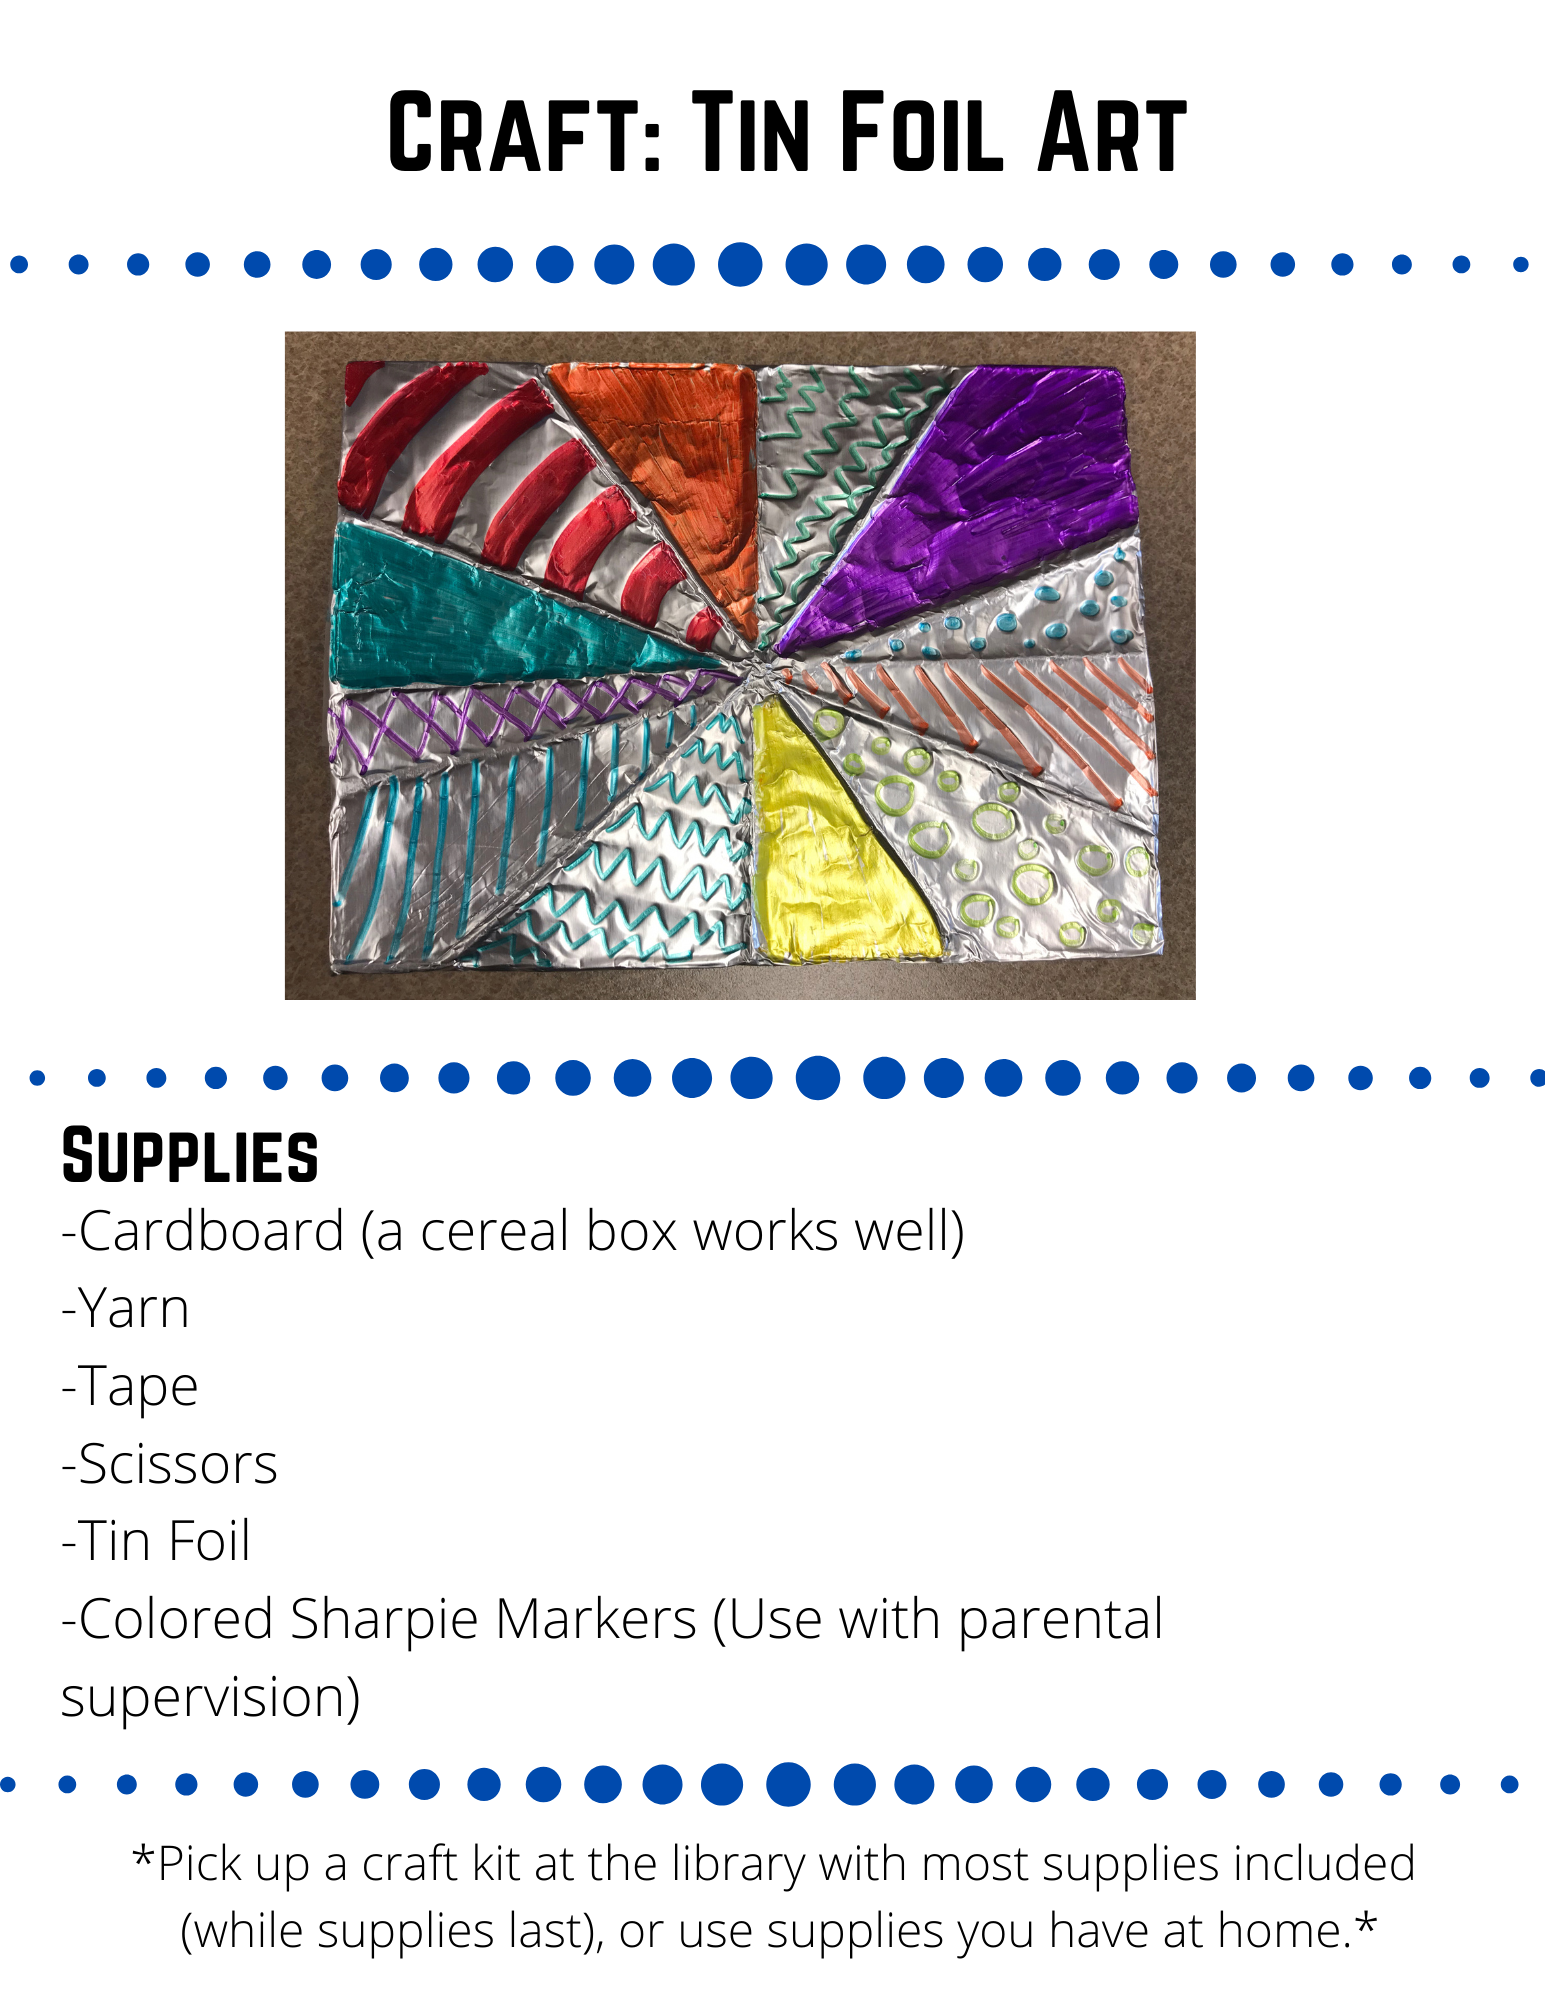 Craft: Tin Foil Art Supplies -Cardboard (a cereal box works well) -Yarn -Tape -Scissors -Tin Foil -Colored Sharpie Markers (Use with parental supervision) Step 1 Cut the  cardboard to the size you would like your art to be. Step 2 Cut off pieces of yarn and wrap them around the cardboard.  Tie them in the back.  To get the yarn to stay, rip or cut small slits in the side of the cardboard and tuck the yarn into the slits.  You can also tape the yarn in the back.  Step 3 Repeat step 2 angling your yarn in many different ways to create a unique design.  Step 4  Cover the cardboard with tin foil.  Press down on the foil to accentuate the yarn lines.  If needed, cover the back with a piece of paper or more tin foil.  Step 5  Use colorful sharpies to create different designs in each of the areas created by your yarn lines.  Be creative!  Miss Becca would love to see what you create!  Share a picture on our social media or email it to rebeccafeirer@lakemills.lib.wi.us